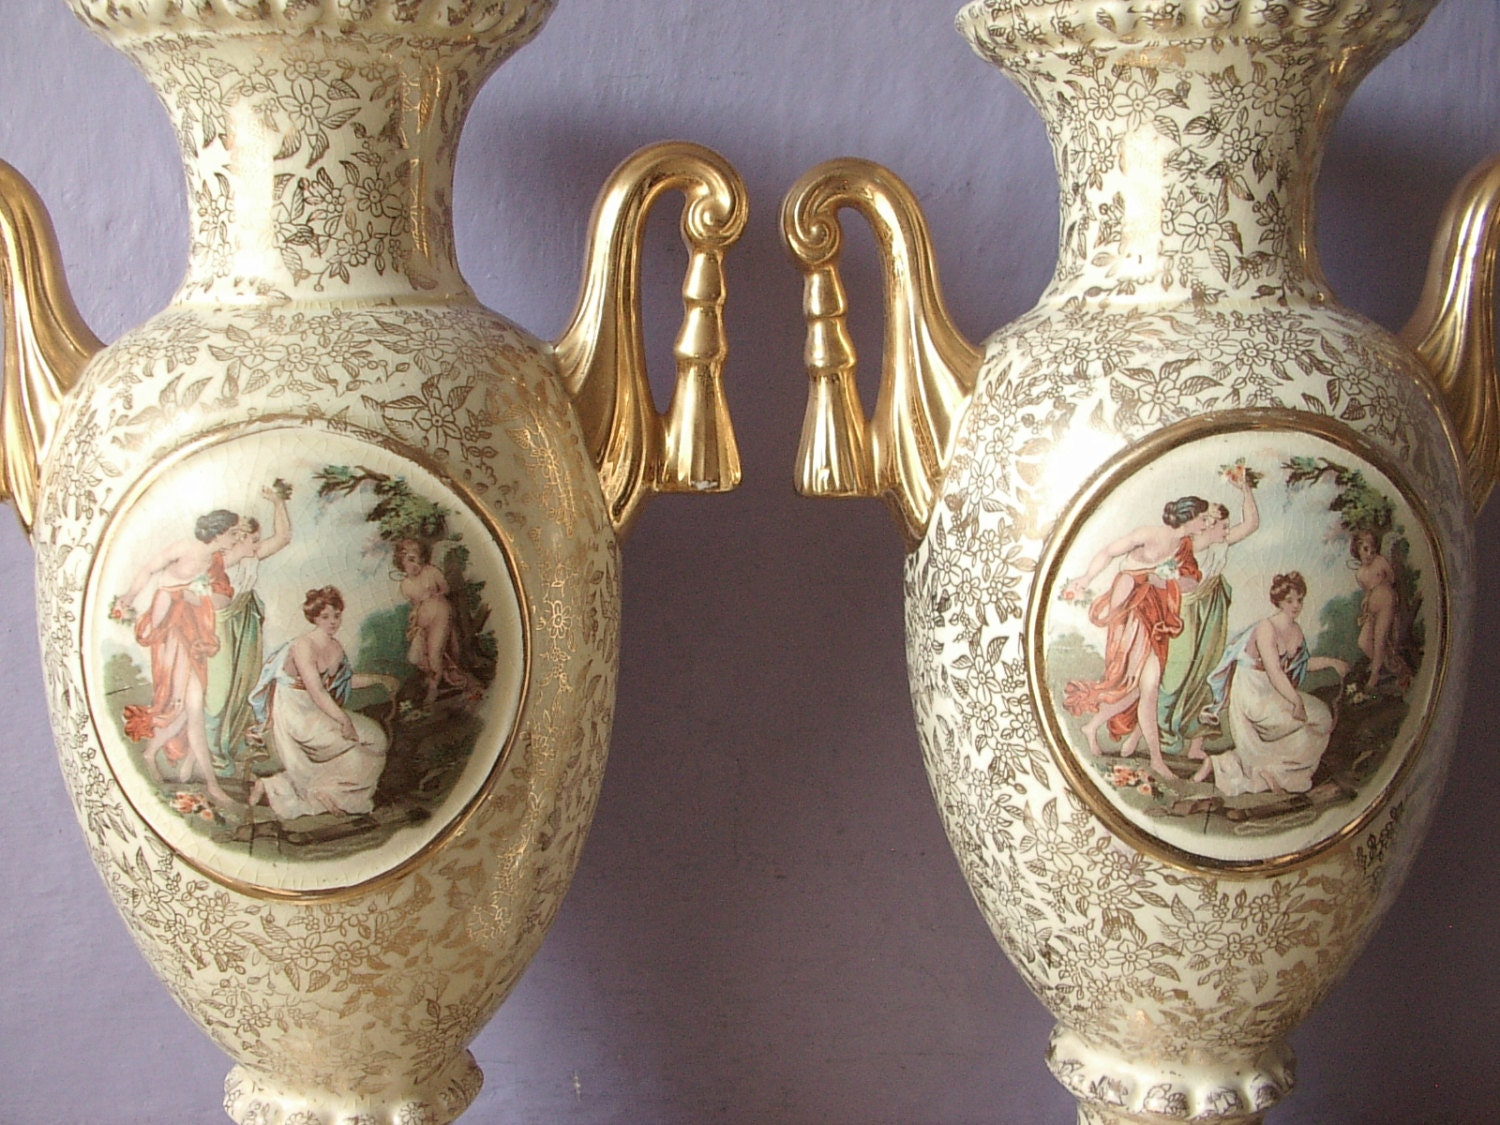 Antique Empire England Porcelain Vases Matching By Shoponsherman